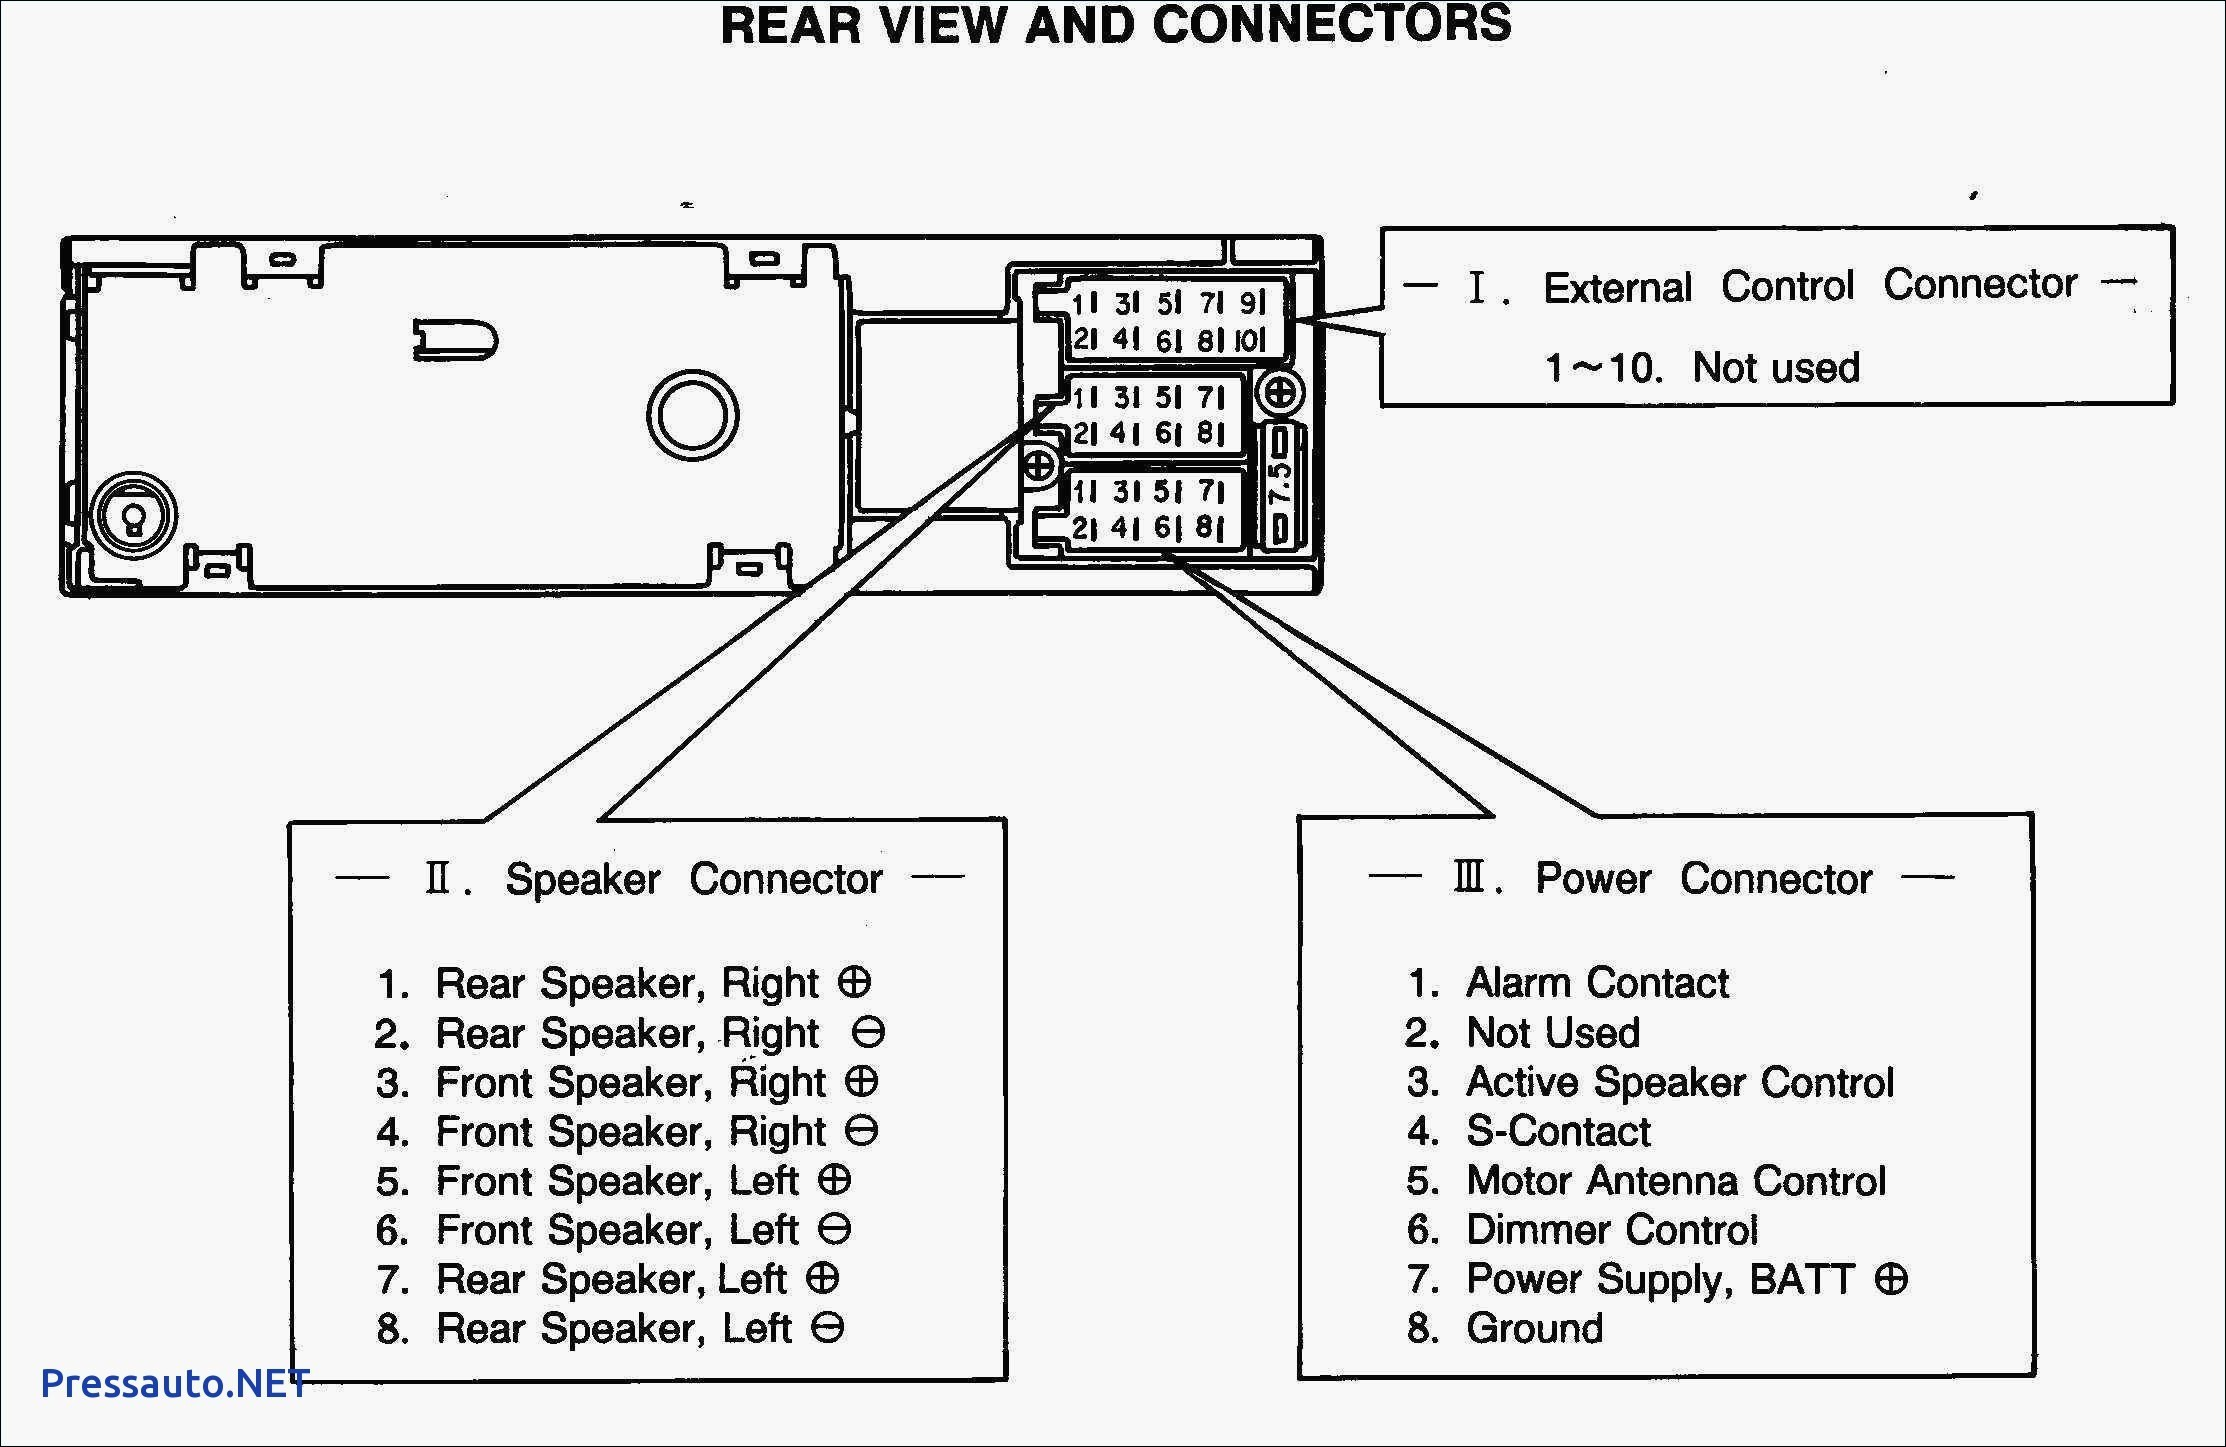 2001 Audi Radio Wiring Diagram FULL HD Version Wiring Diagram -  KAMI-DIAGRAMBASE.MILLE-ANNONCES.FR